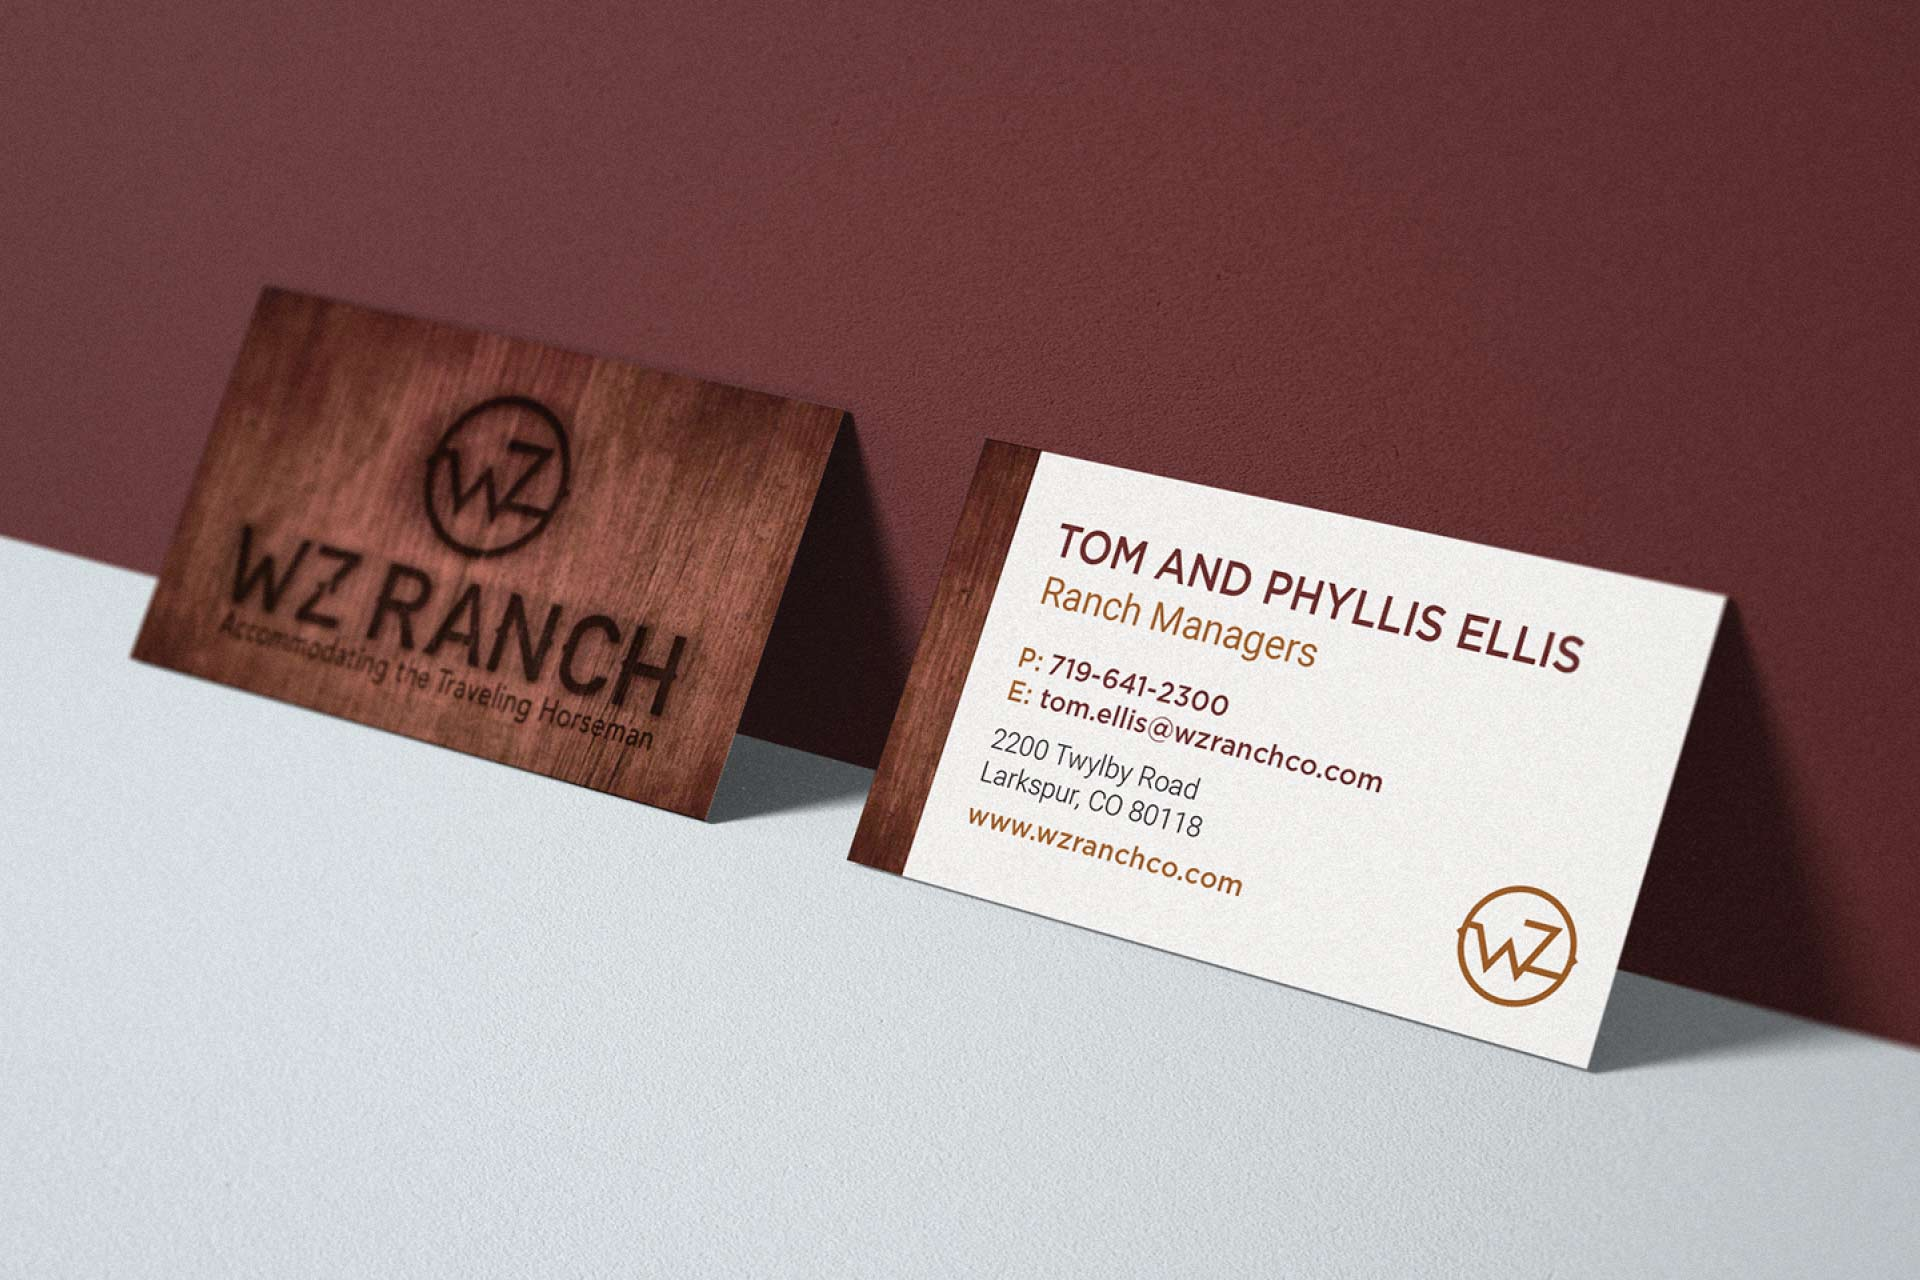 Blakely company work wz ranch branding business cards blakely blakely company work wz ranch branding business cards colourmoves